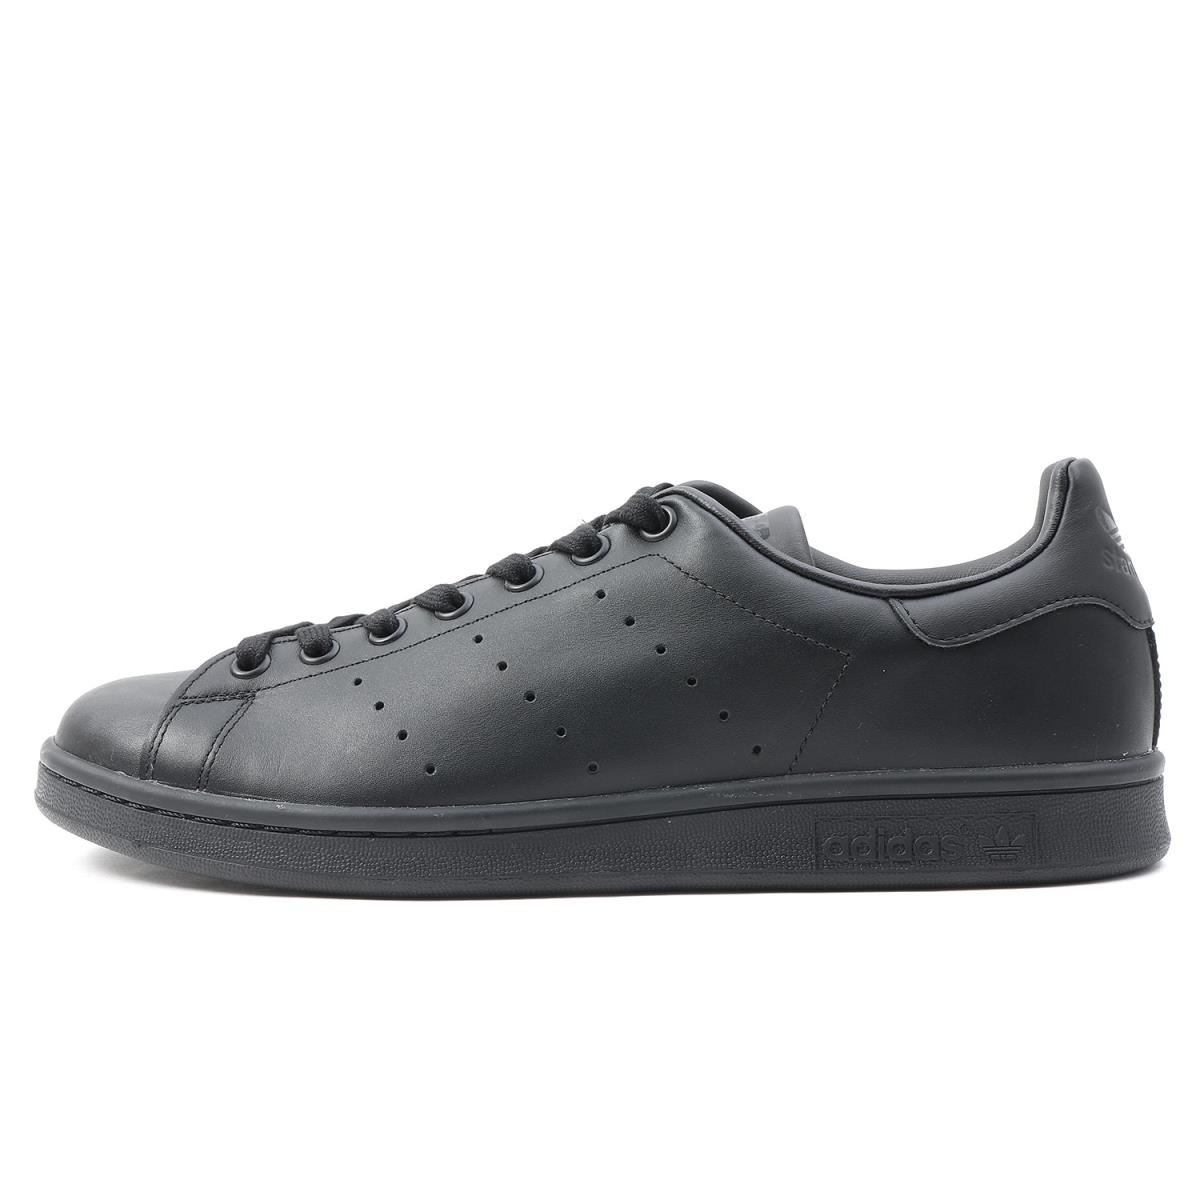 site réputé a1ed1 48fe0 adidas (Adidas) ABC-MART-limited STAN SMITH triple black (M20327) black  US10(28cm)